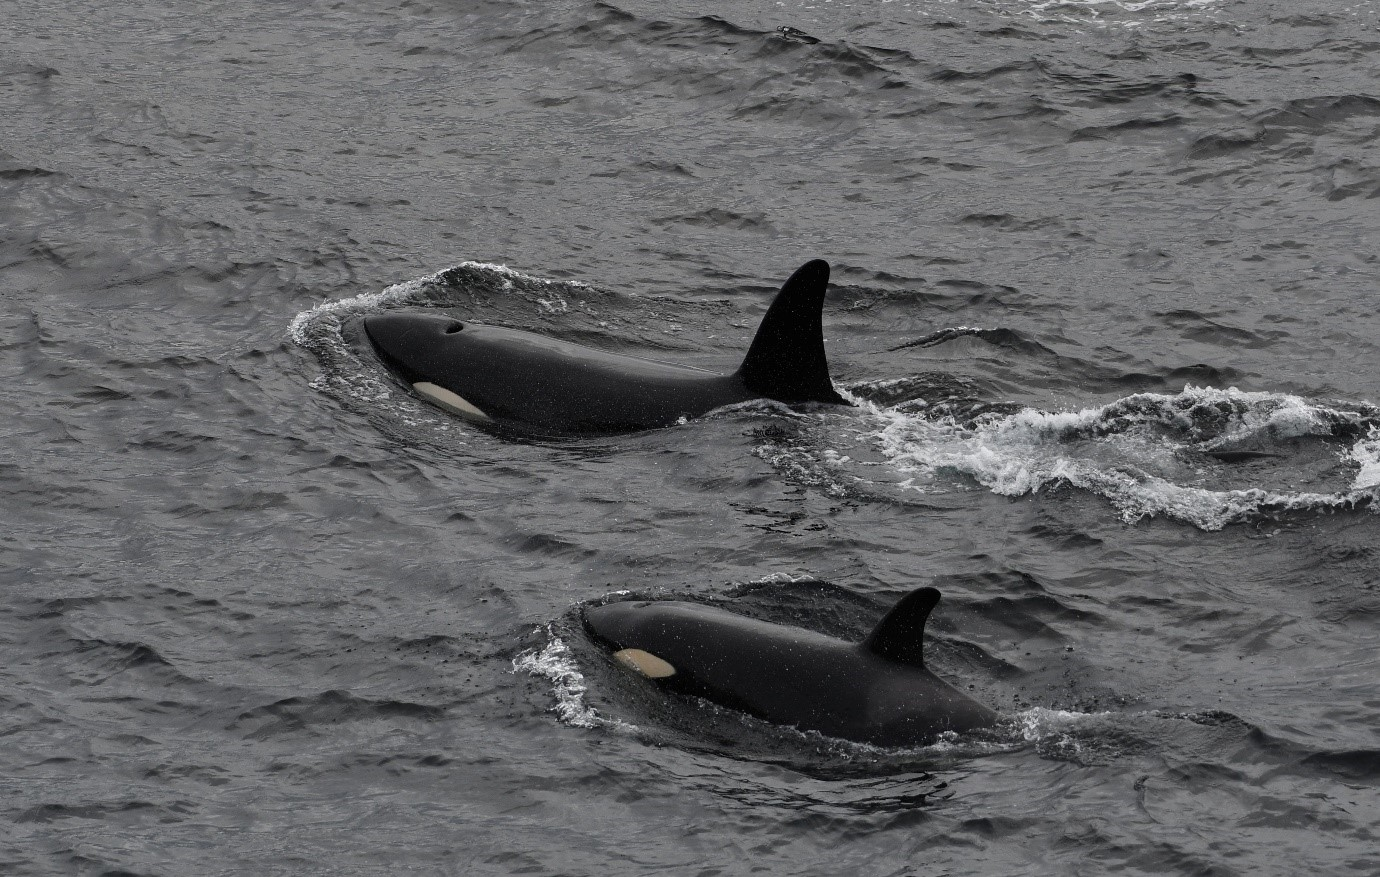 Orcas  photographed off Burwick, on May 25, 2019. Photo credit: Robert Foubister.